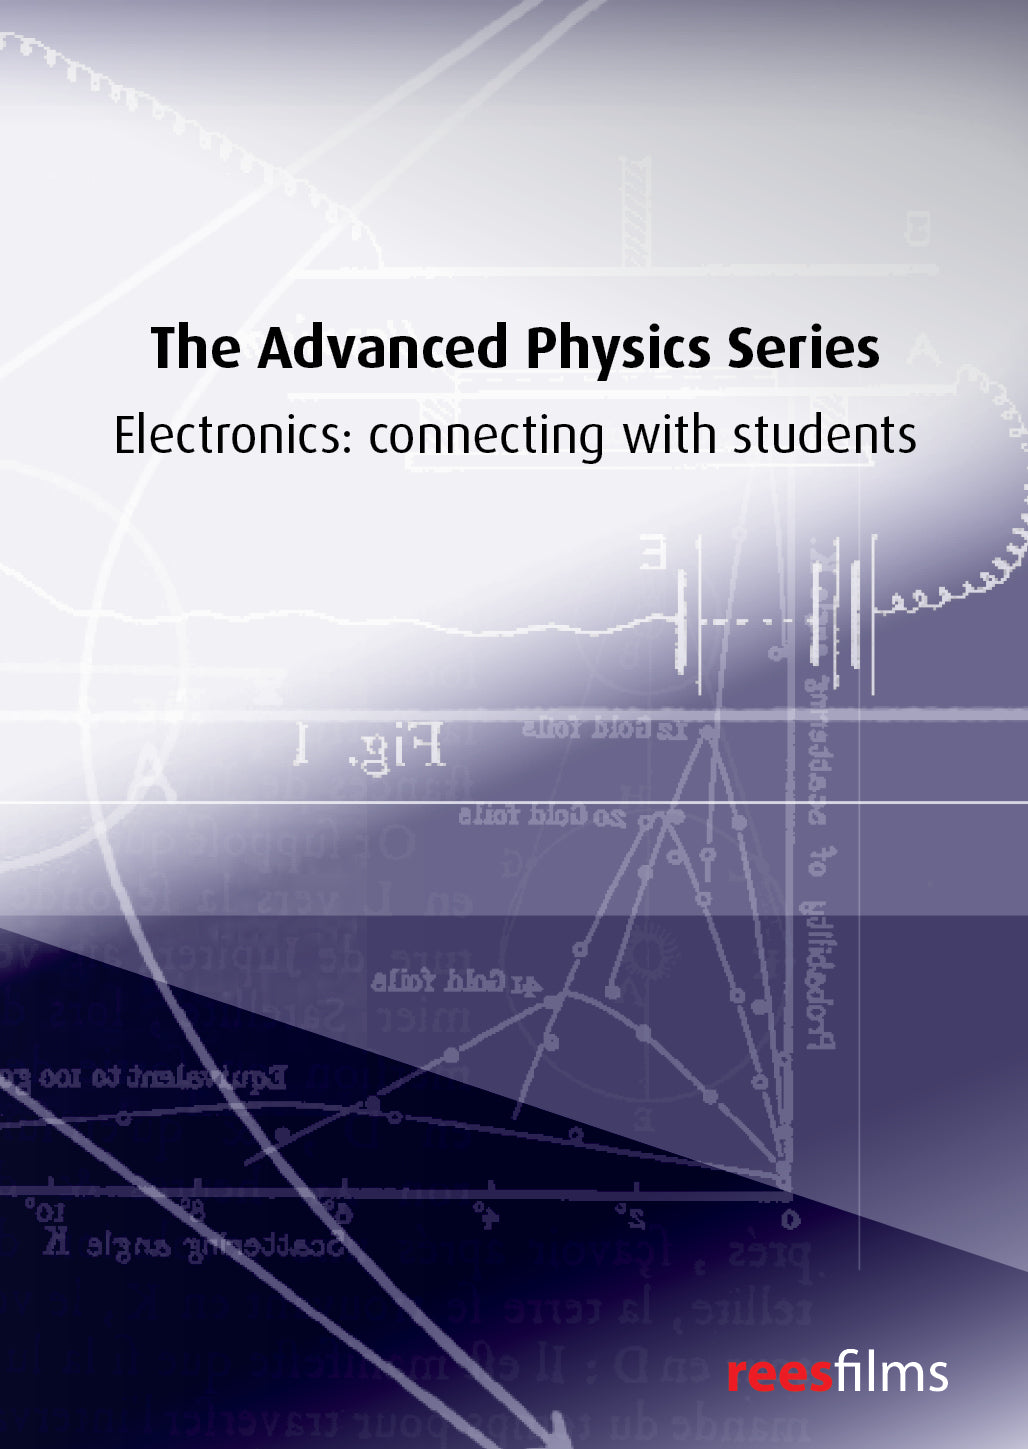 The Advanced Physics Series: Electronics: connecting with students